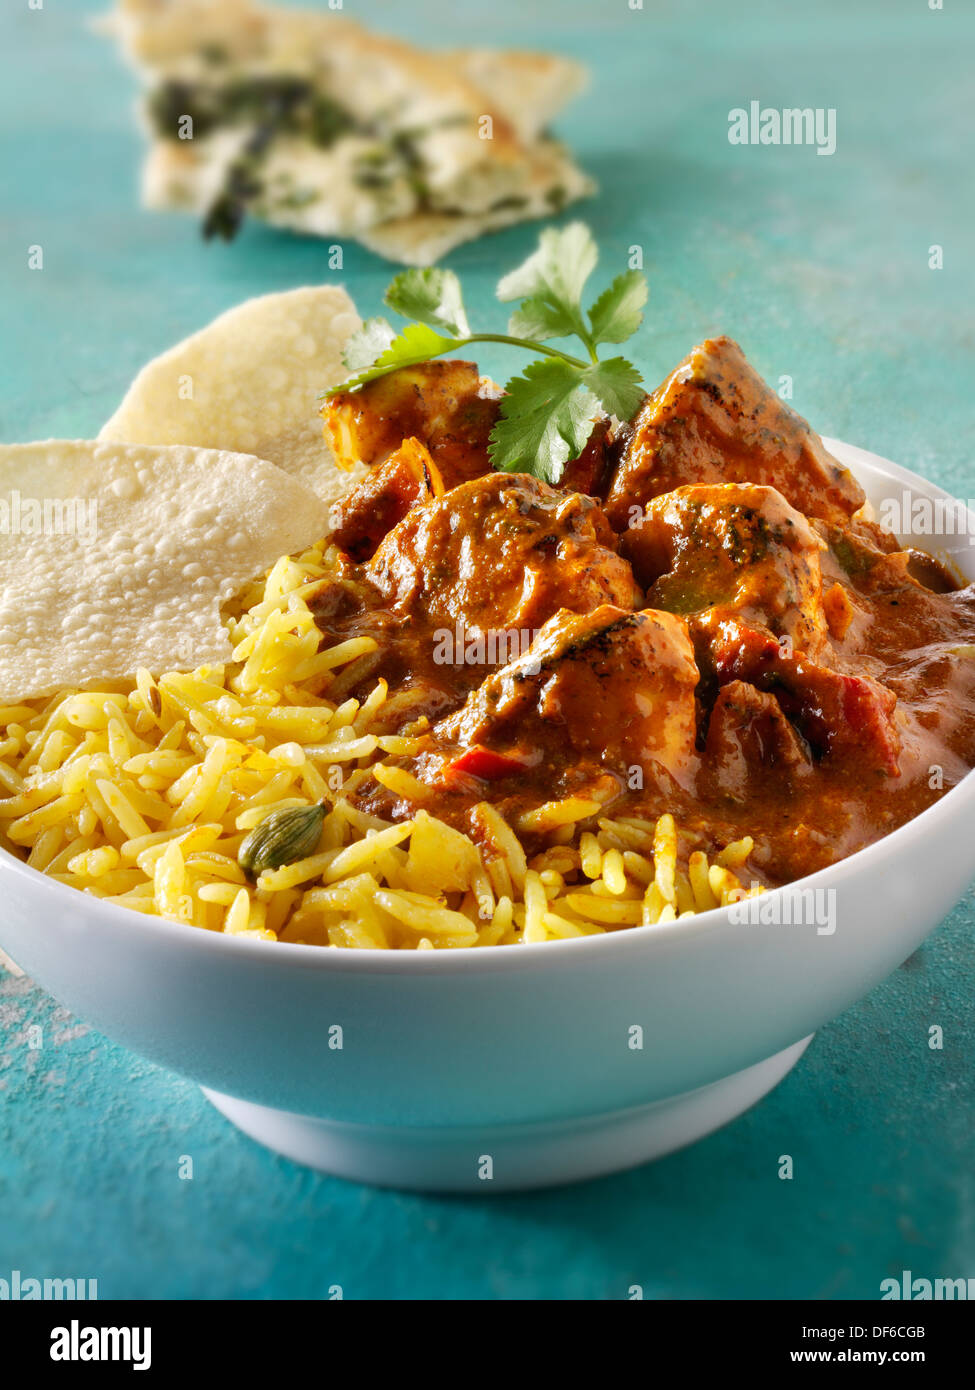 Balti Chicken Indian Curry - Stock Image